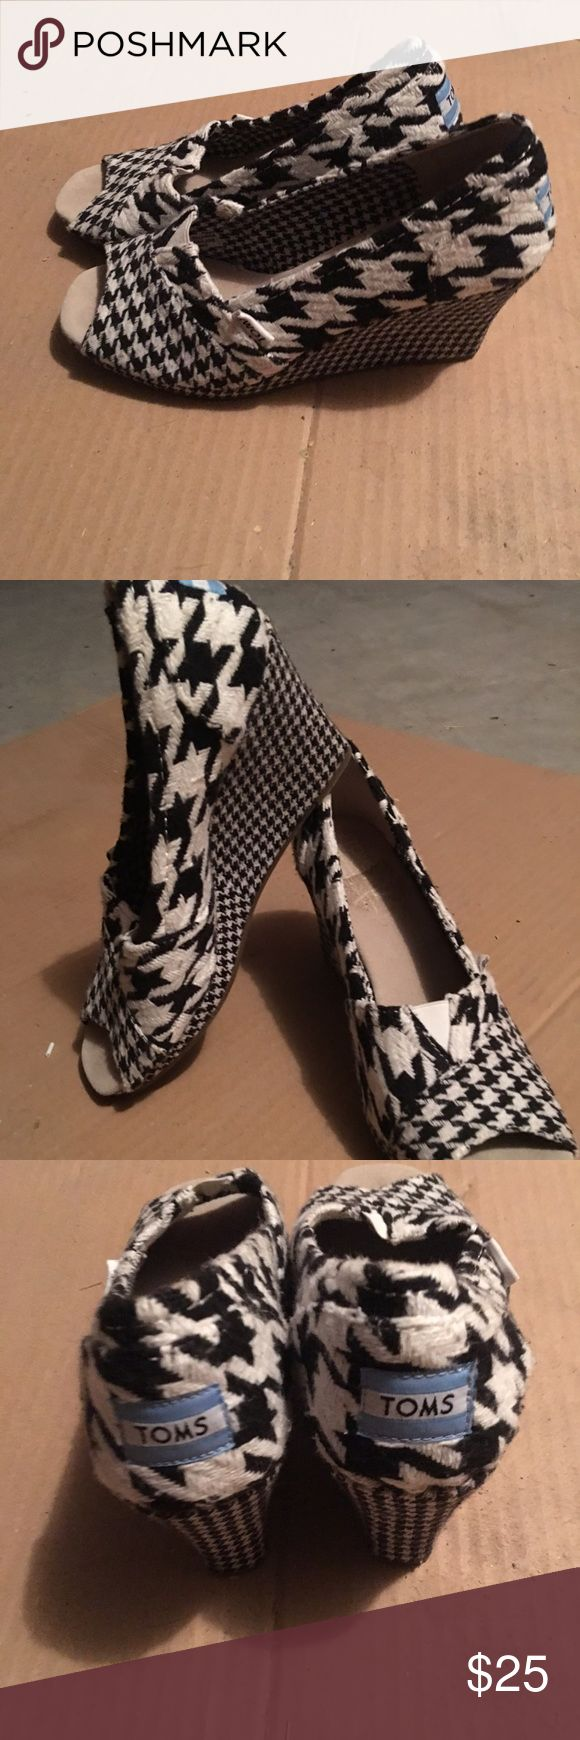 TOM wedges A beautiful black and white pattern tom wedge. Super comfortable, have only been worn once 🤗 TOMS Shoes Wedges